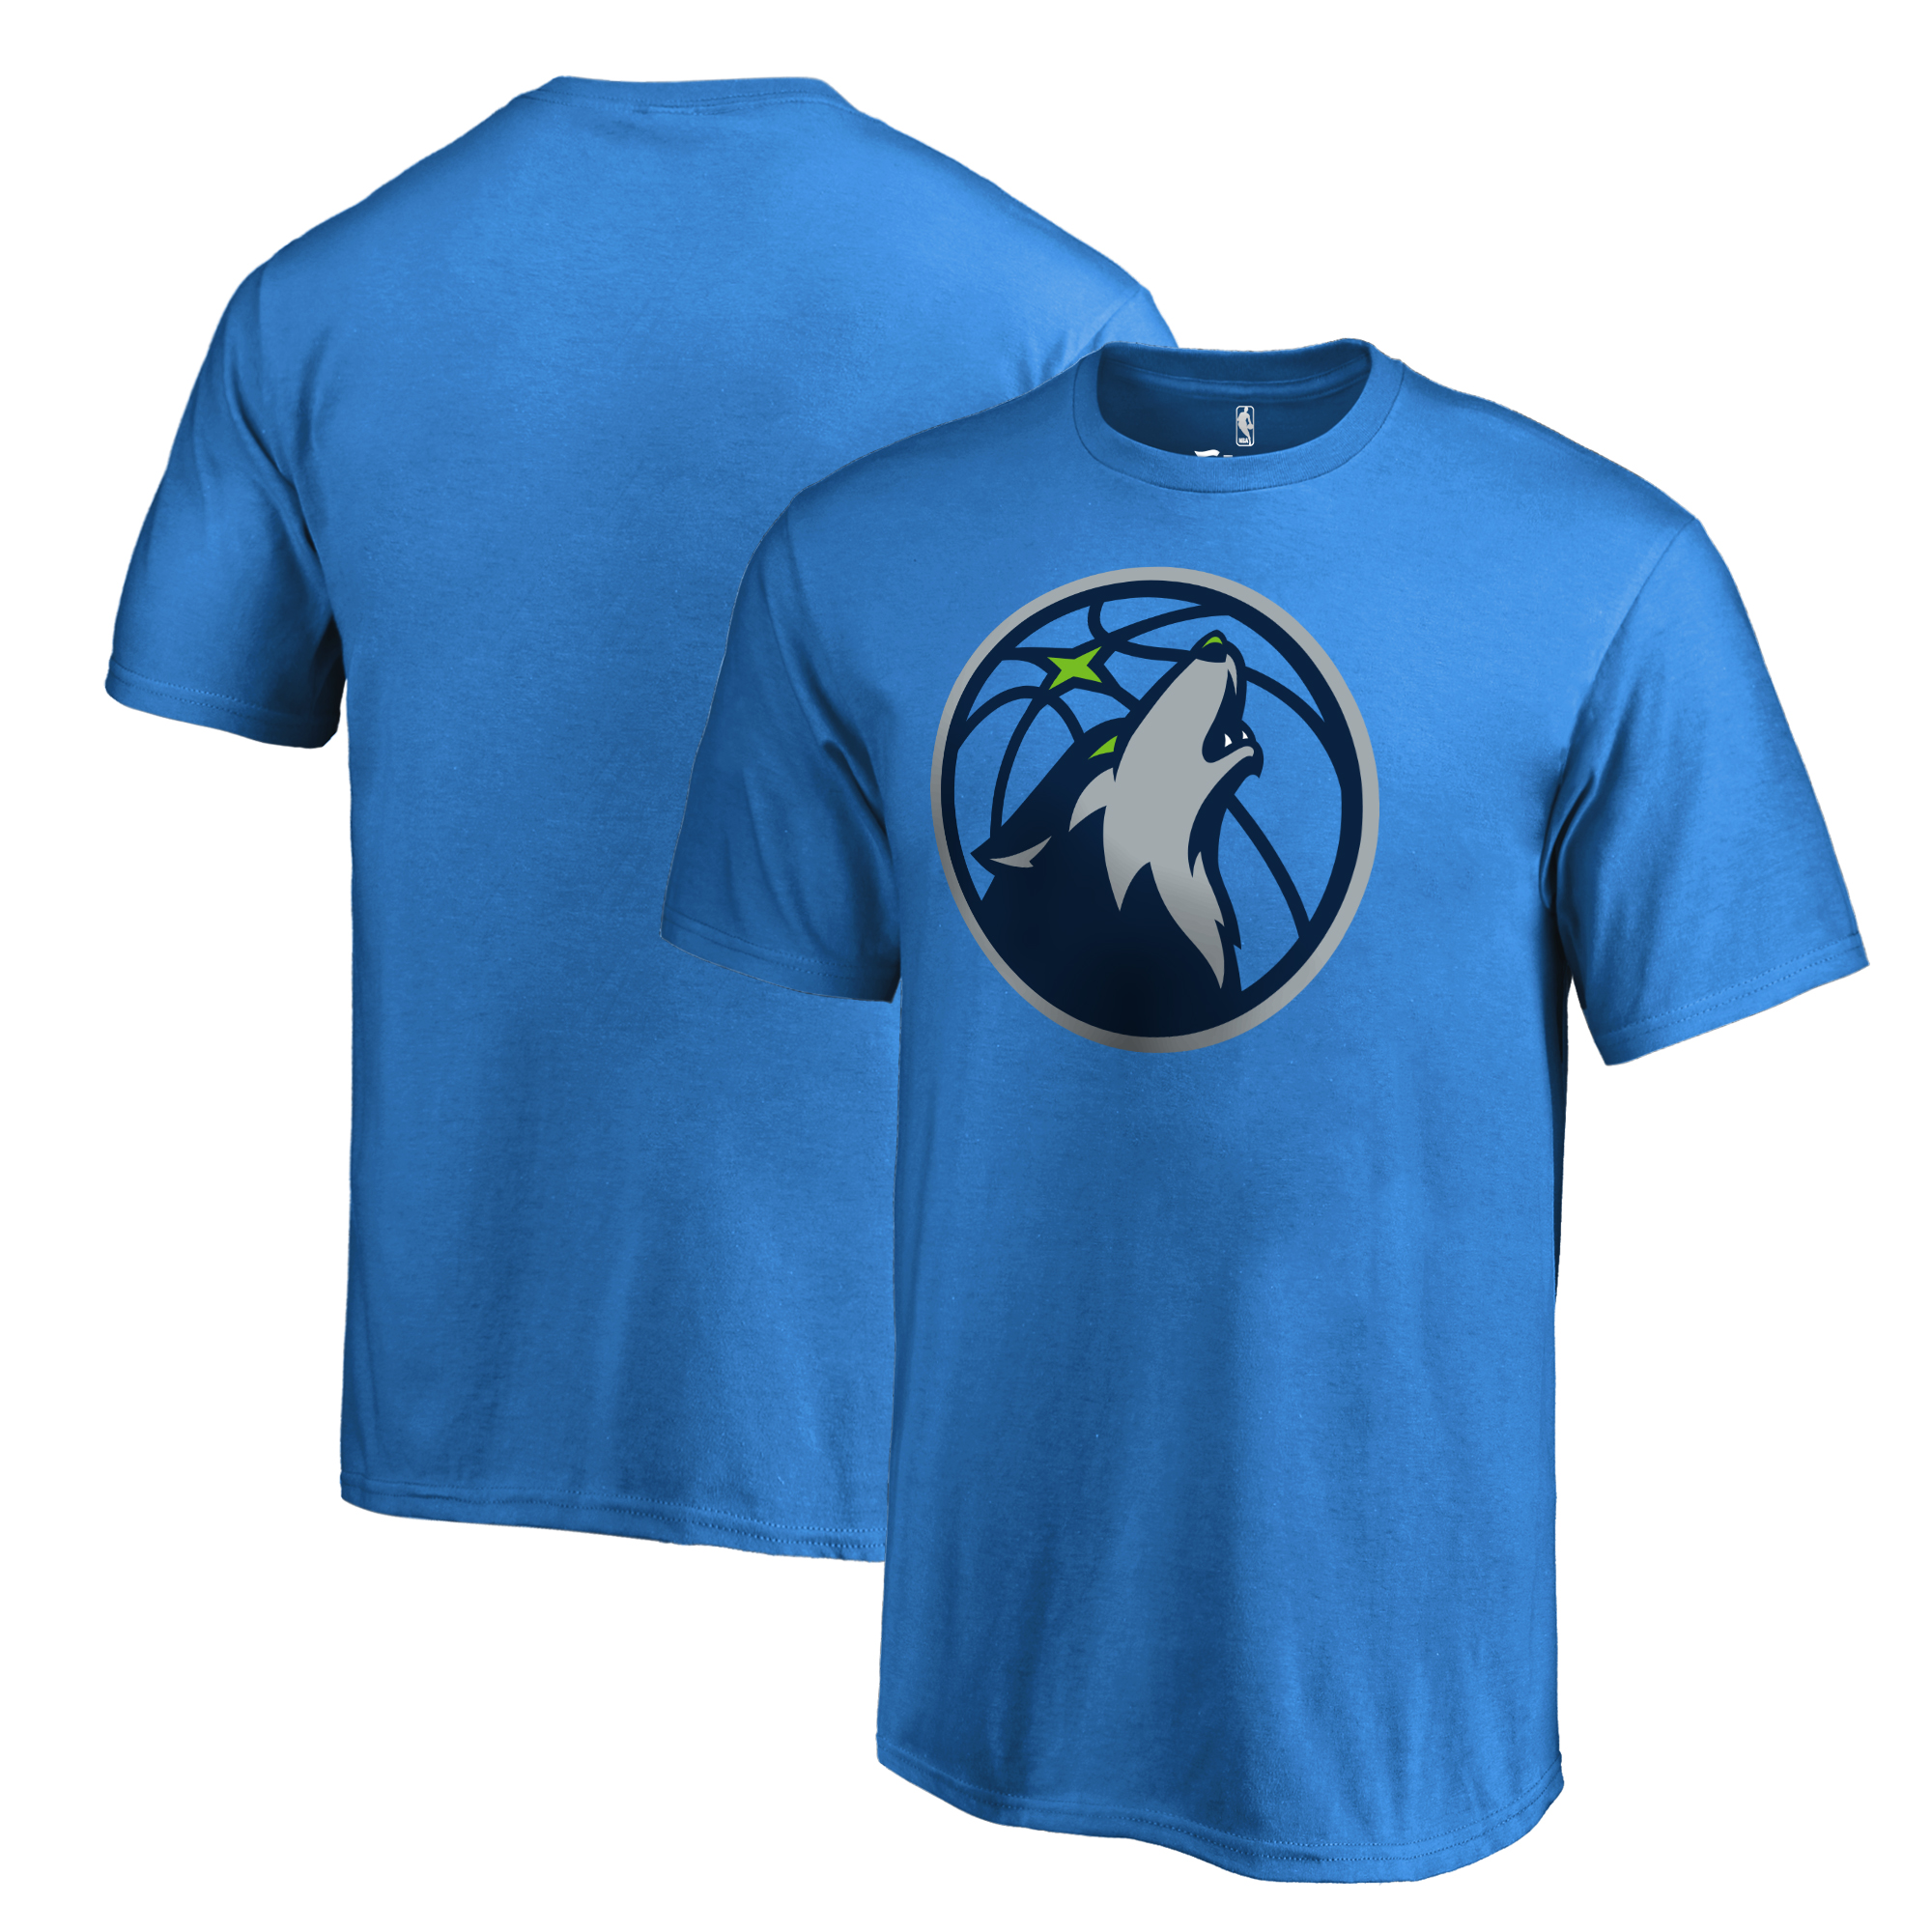 Minnesota Timberwolves Fanatics Branded Youth Primary Logo T-Shirt - Blue